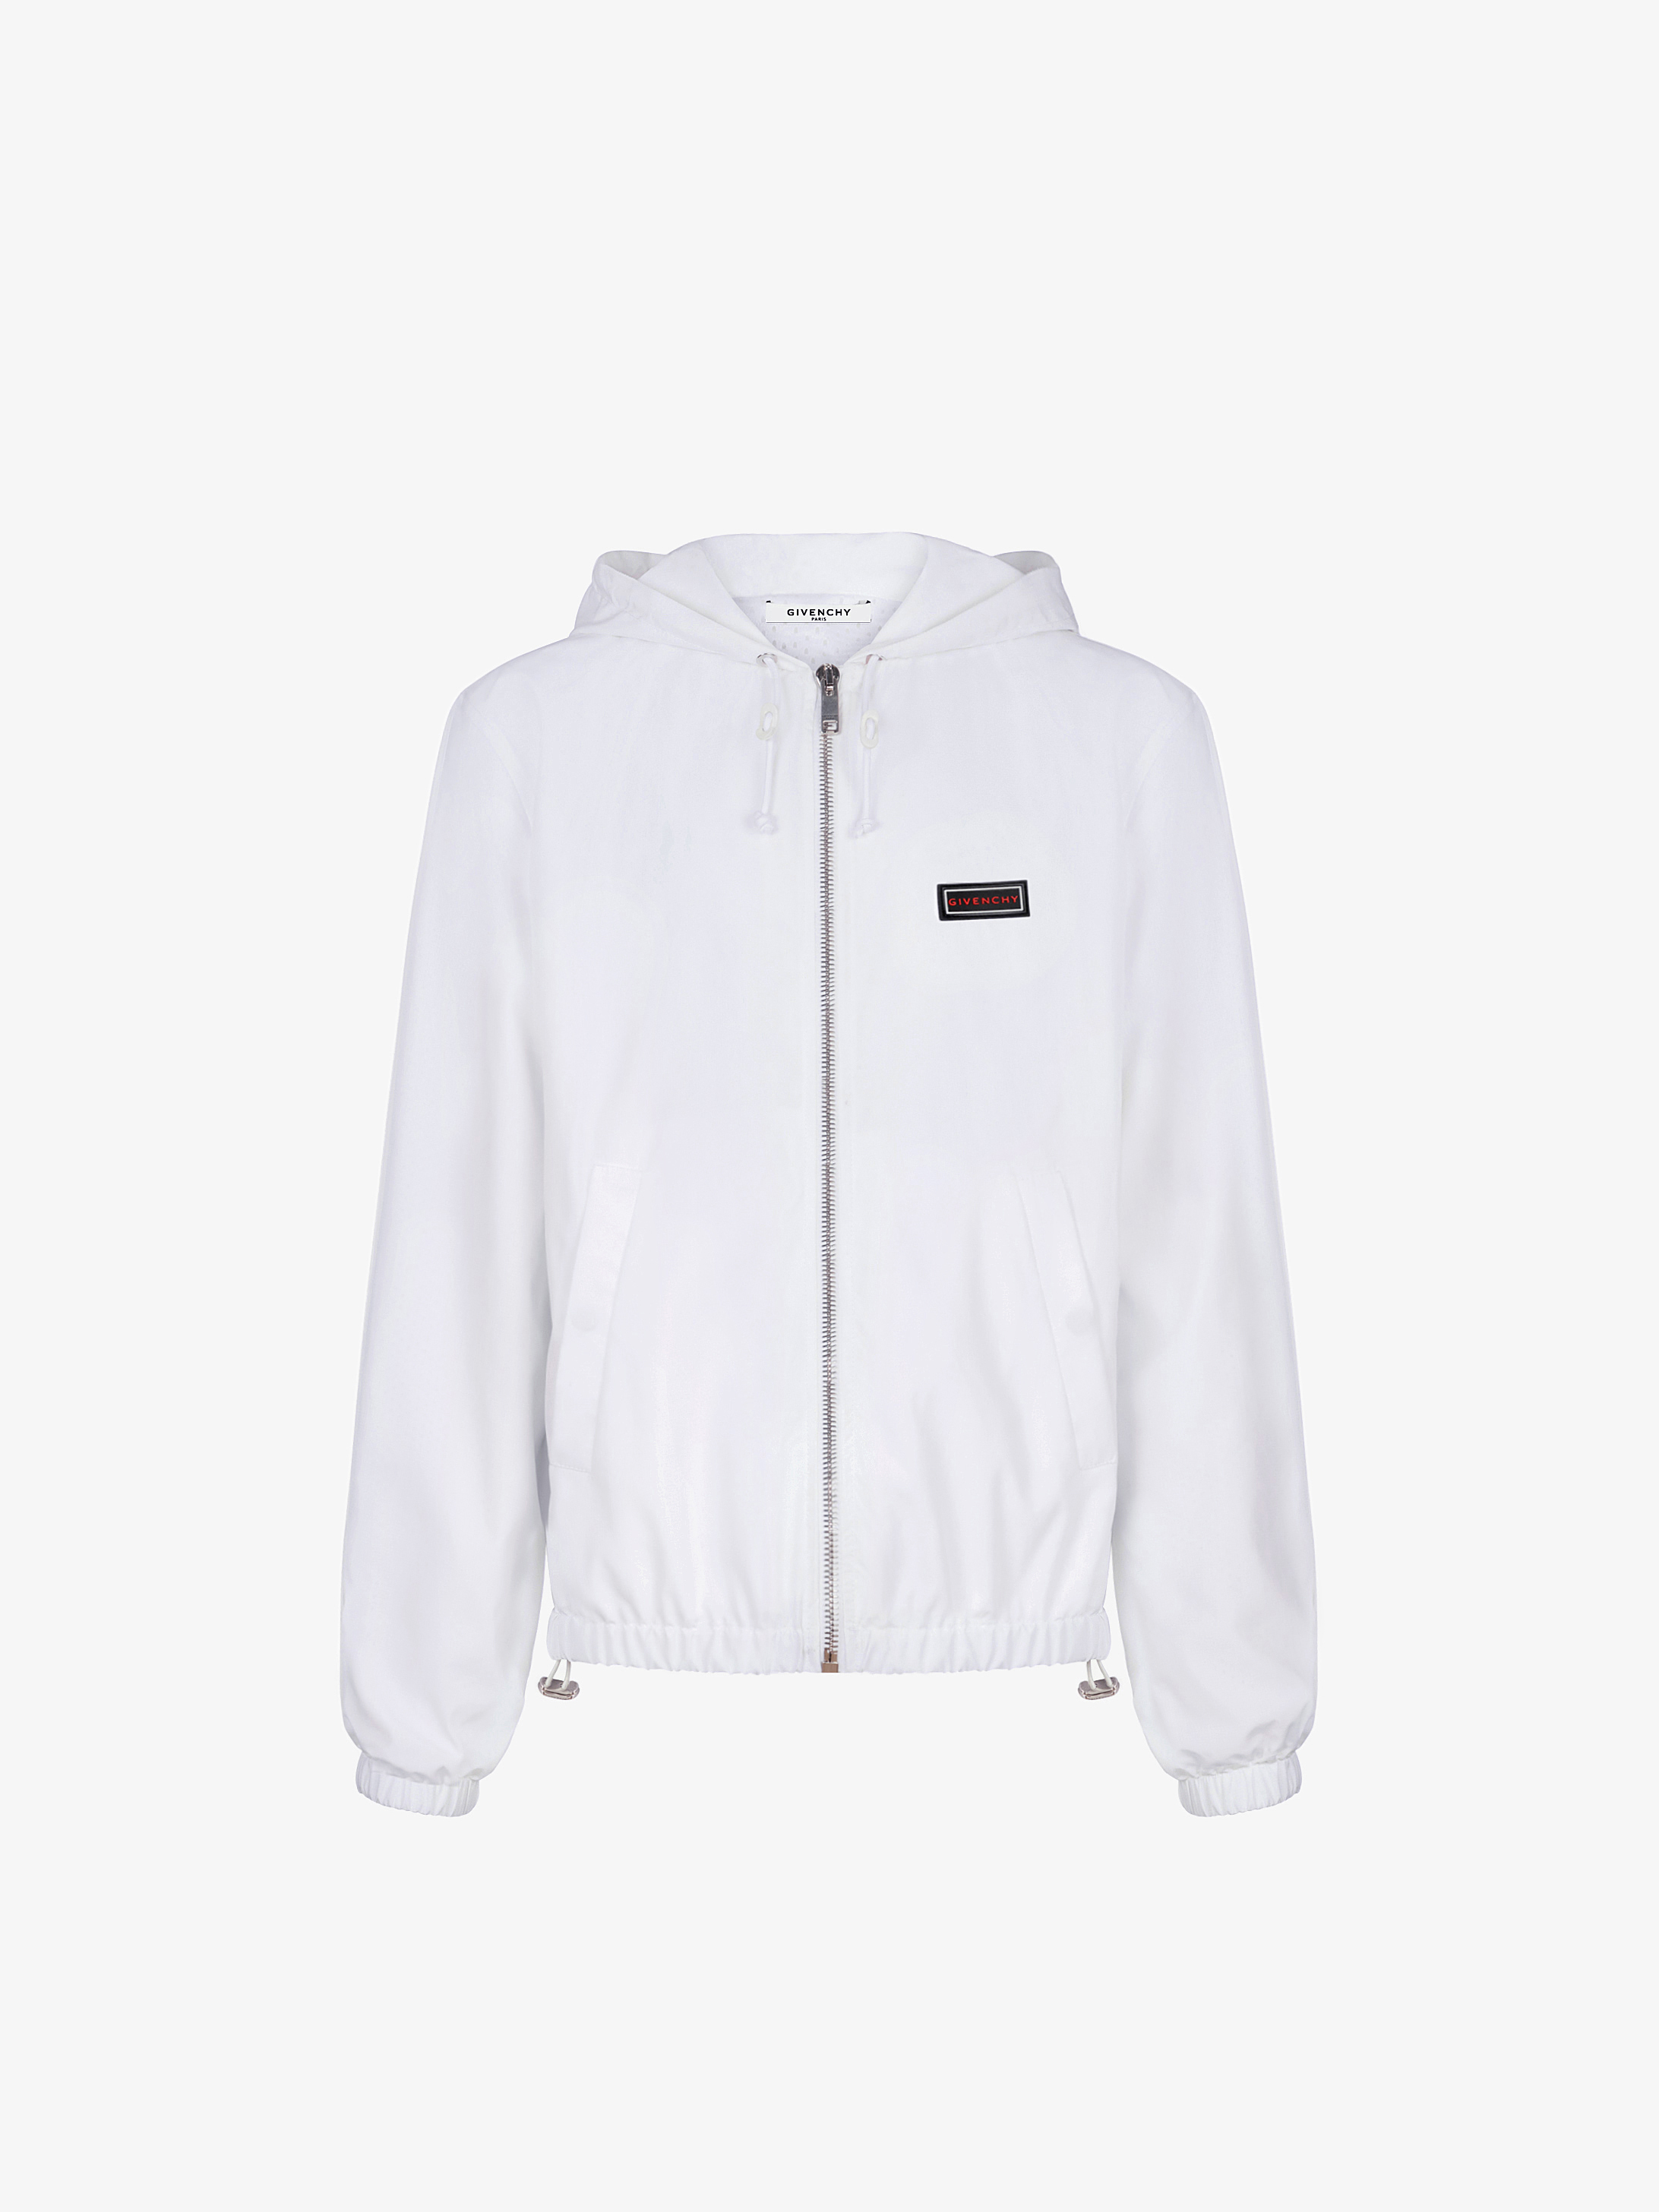 GIVENCHY patch windbreaker